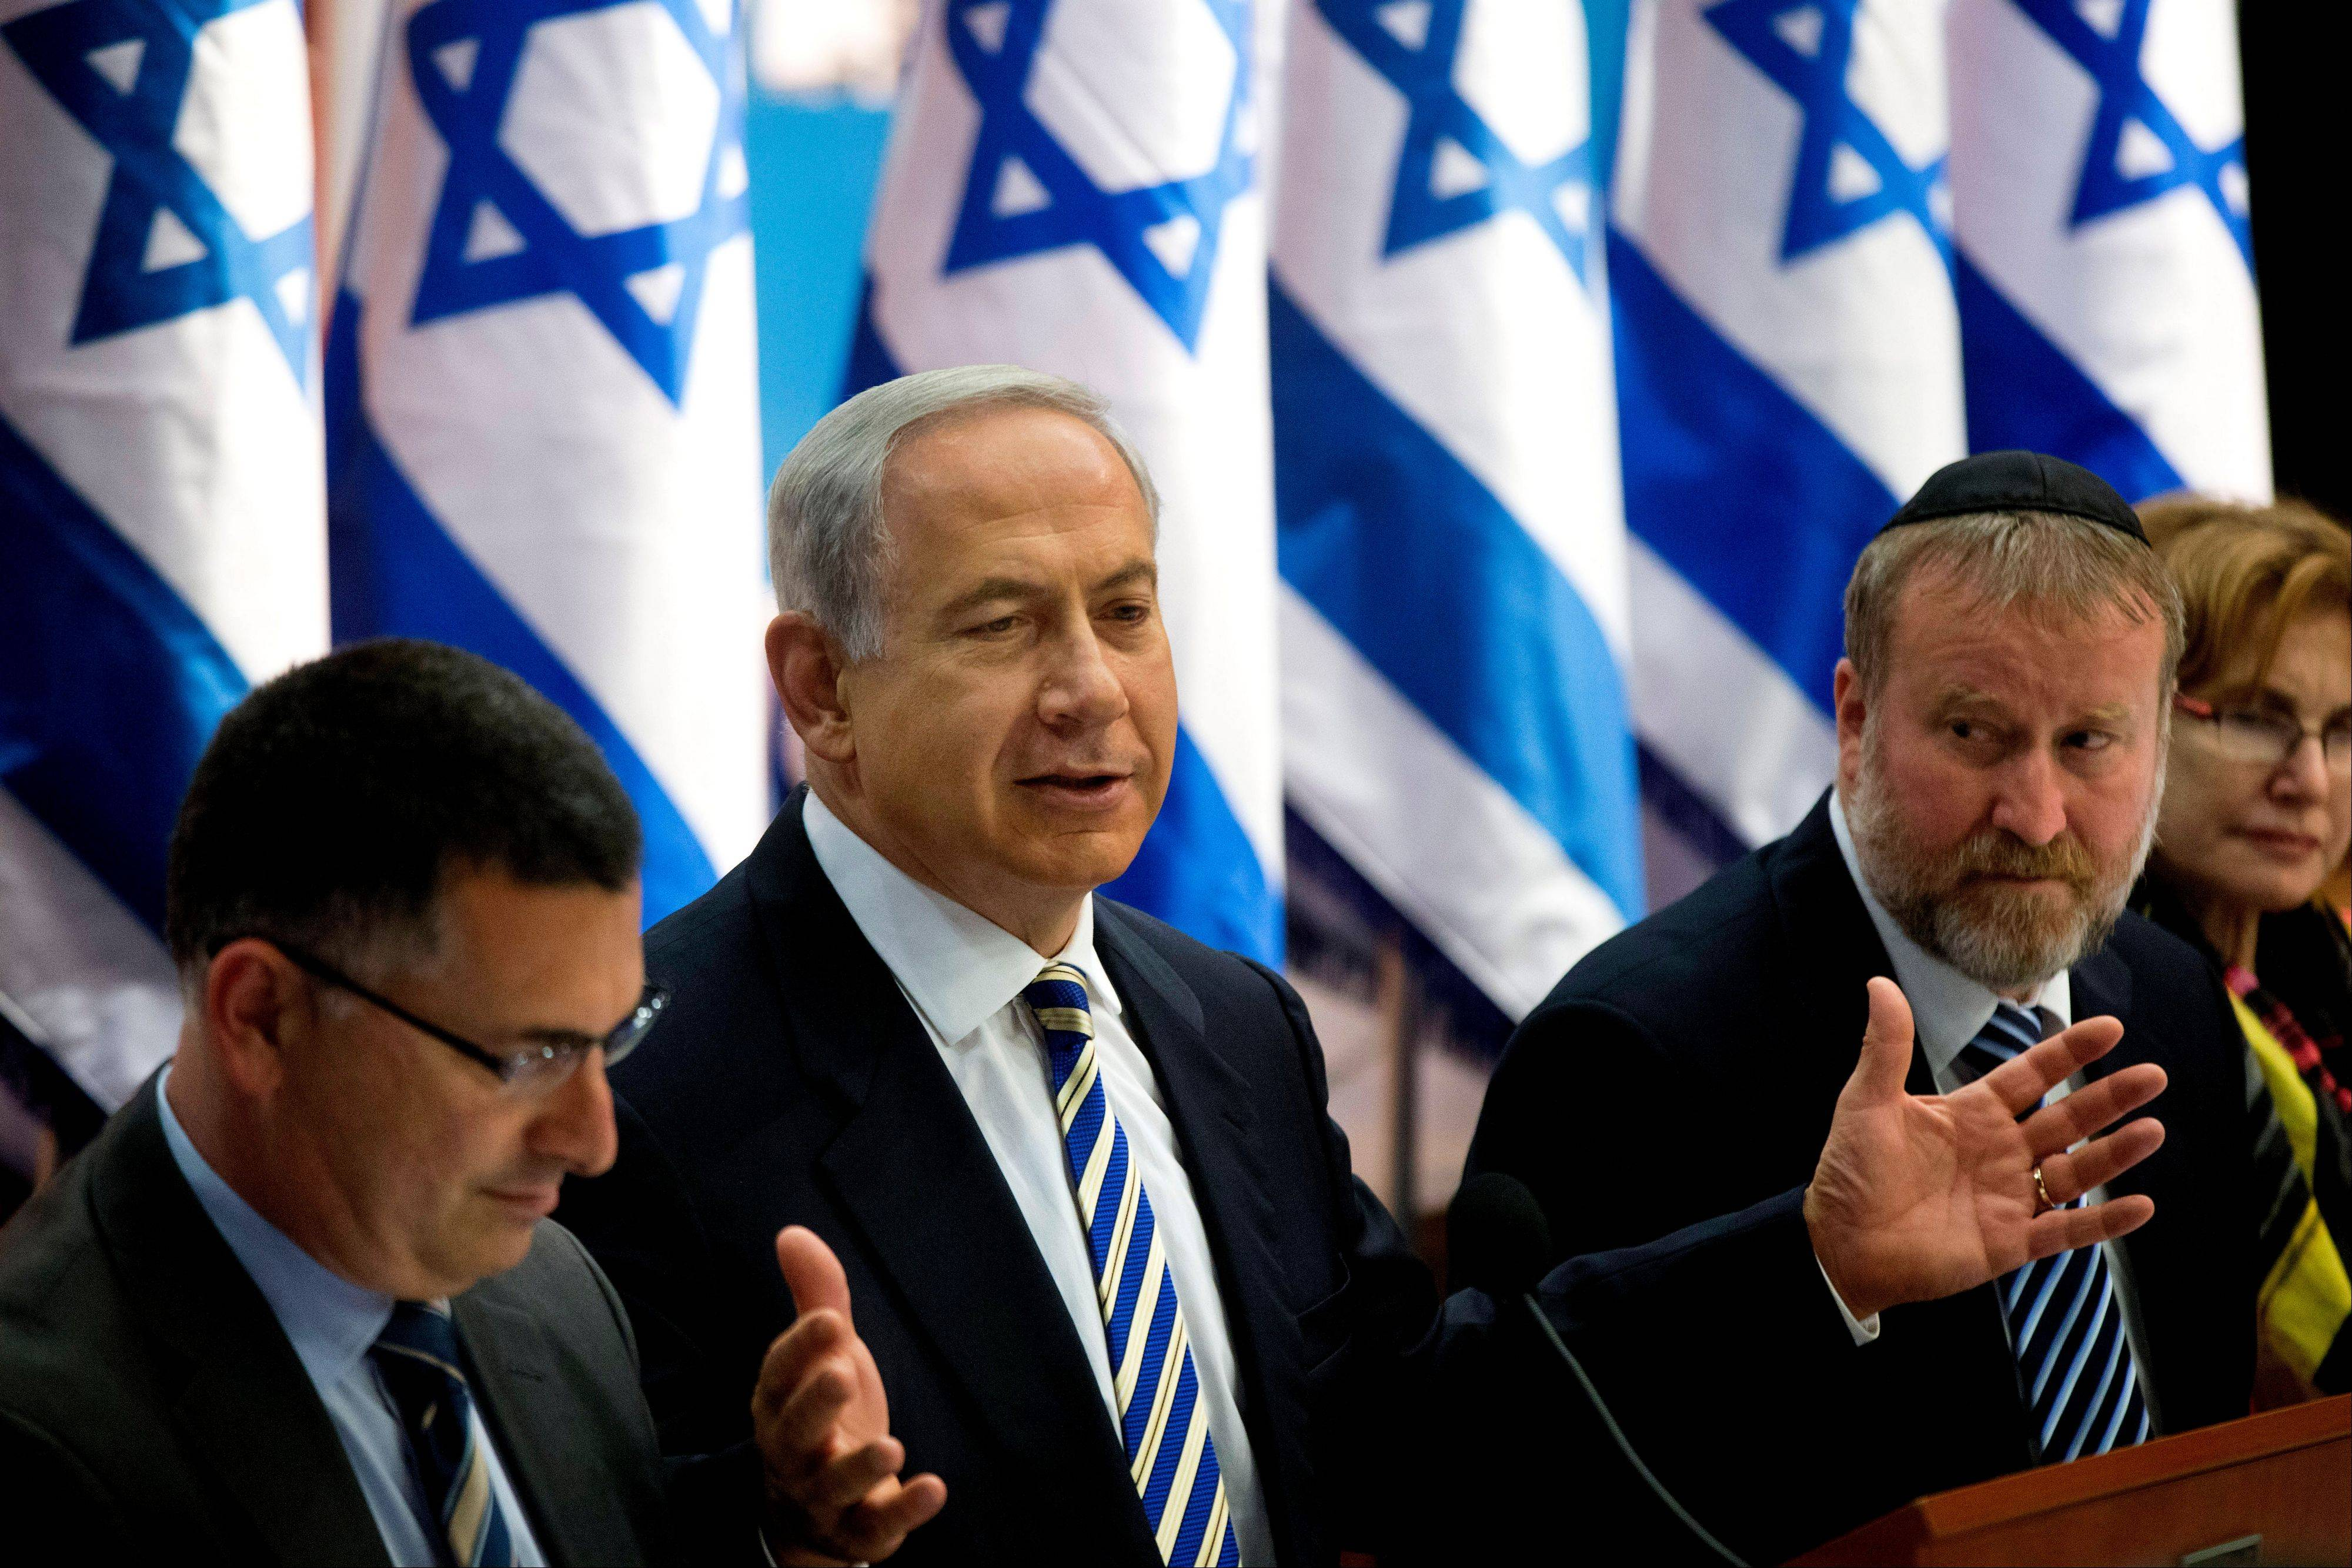 Israel's Prime Minister Benjamin Netanyahu, center, speaks during the weekly cabinet meeting in Jerusalem, Sunday, July 21, 2013. Netanyahu says he is fast-tracking legislation that will allow him to put any future peace deal with the Palestinians to a referendum in Israel.